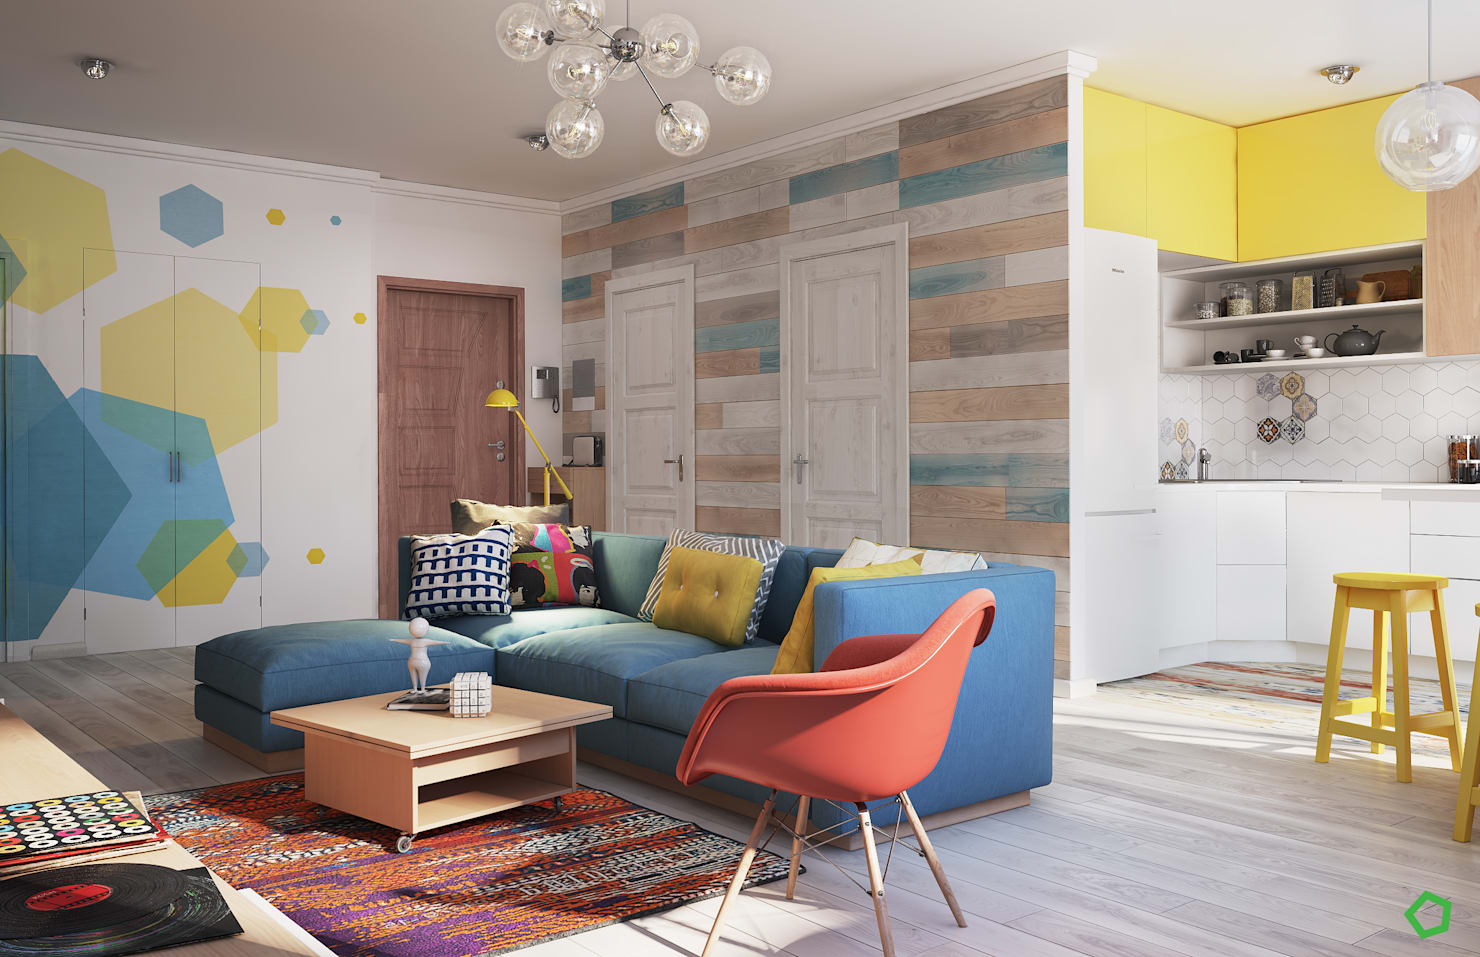 This modern apartment is a playground for colors!